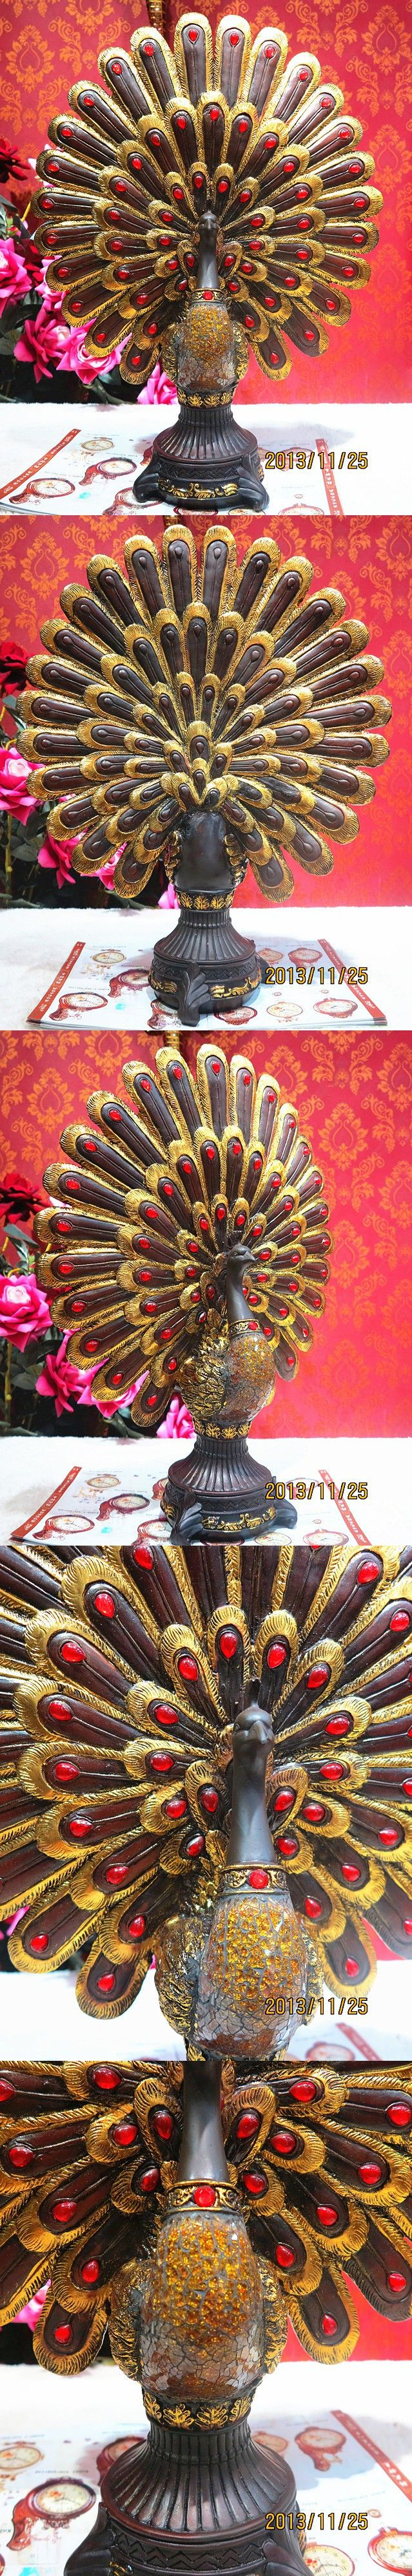 best 25 peacock ornaments ideas only on pinterest clay christmas trees home decorations wedding decorations